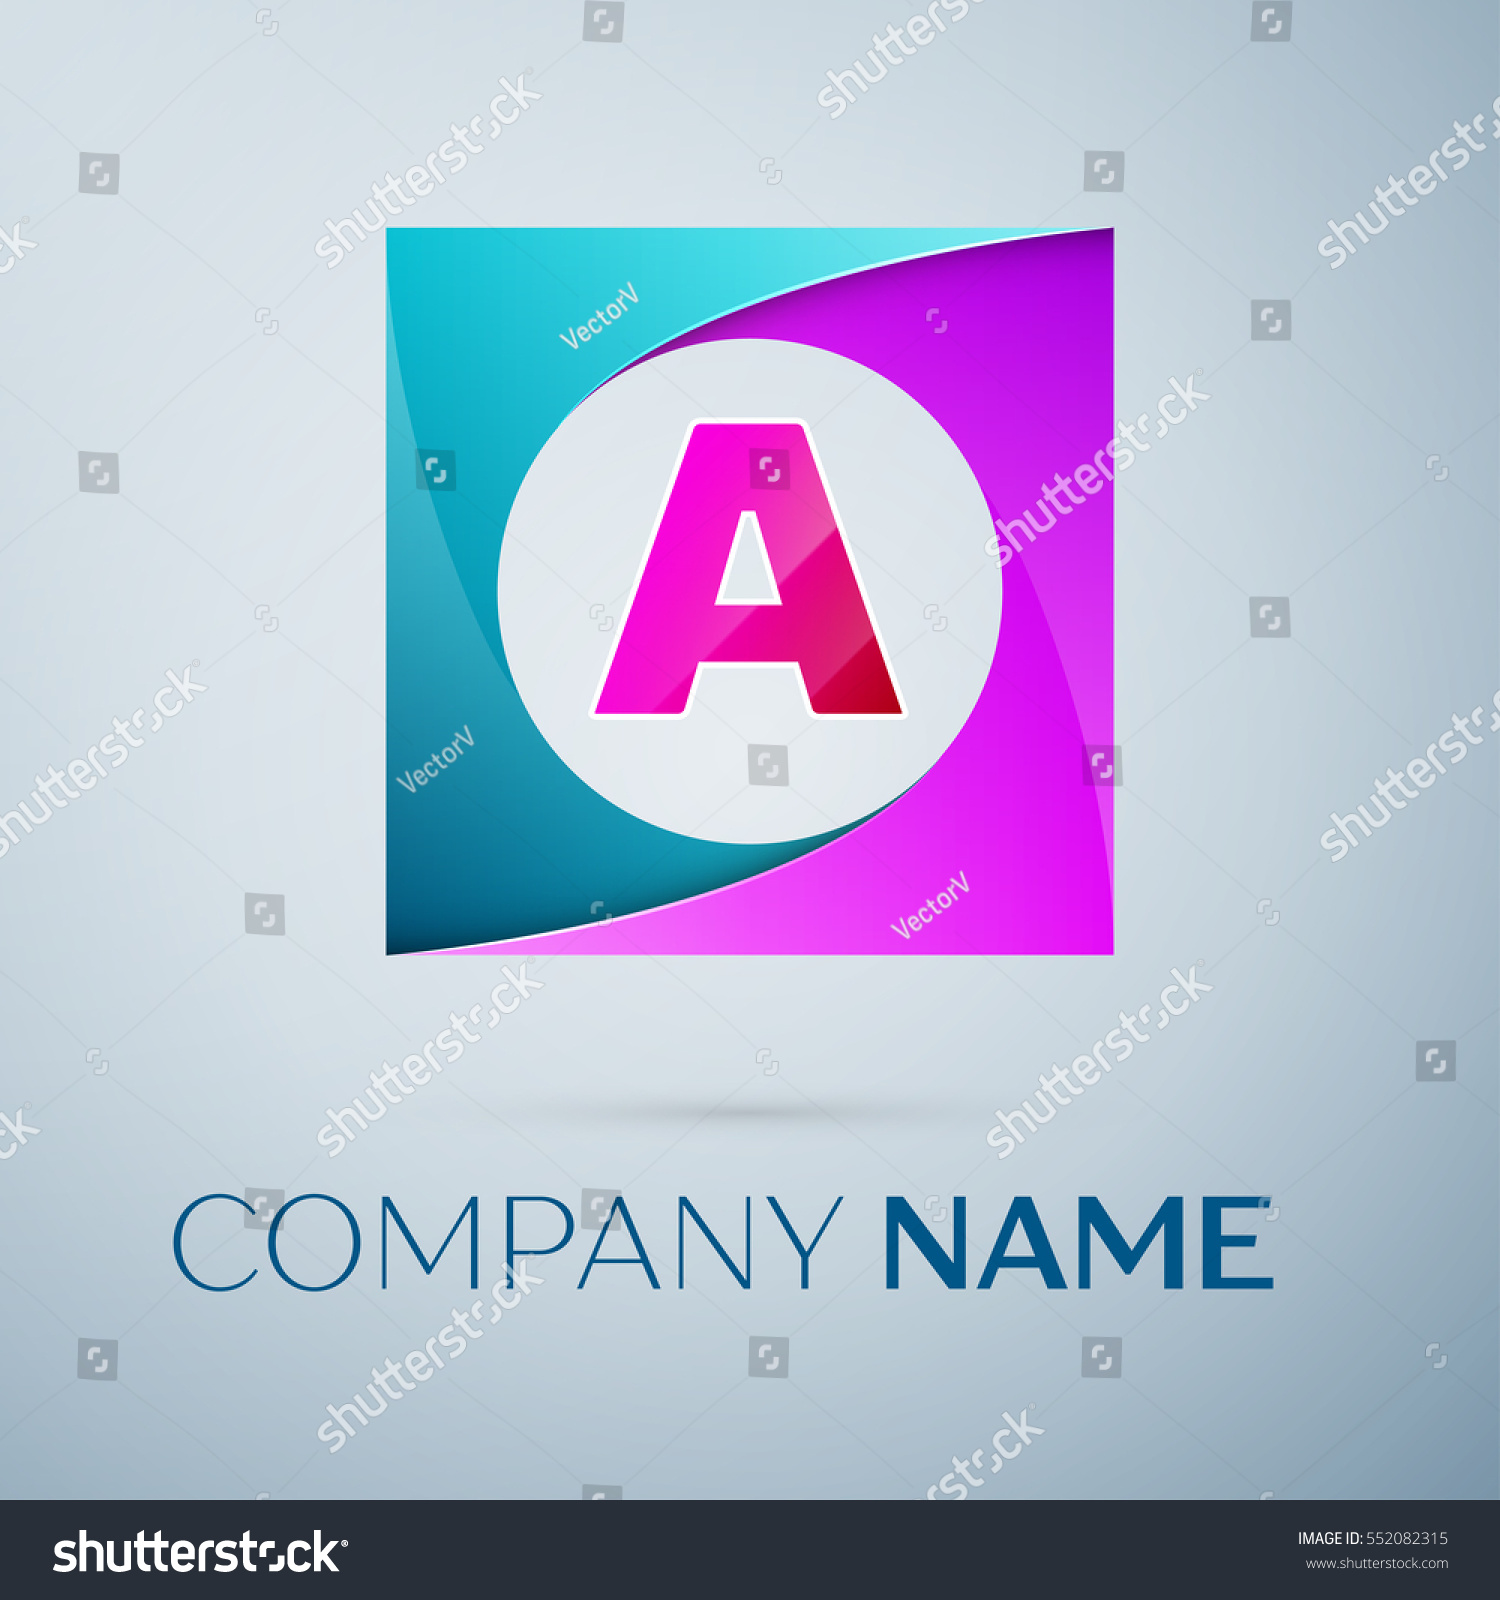 letter vector logo symbol colorful square stock vector royalty free